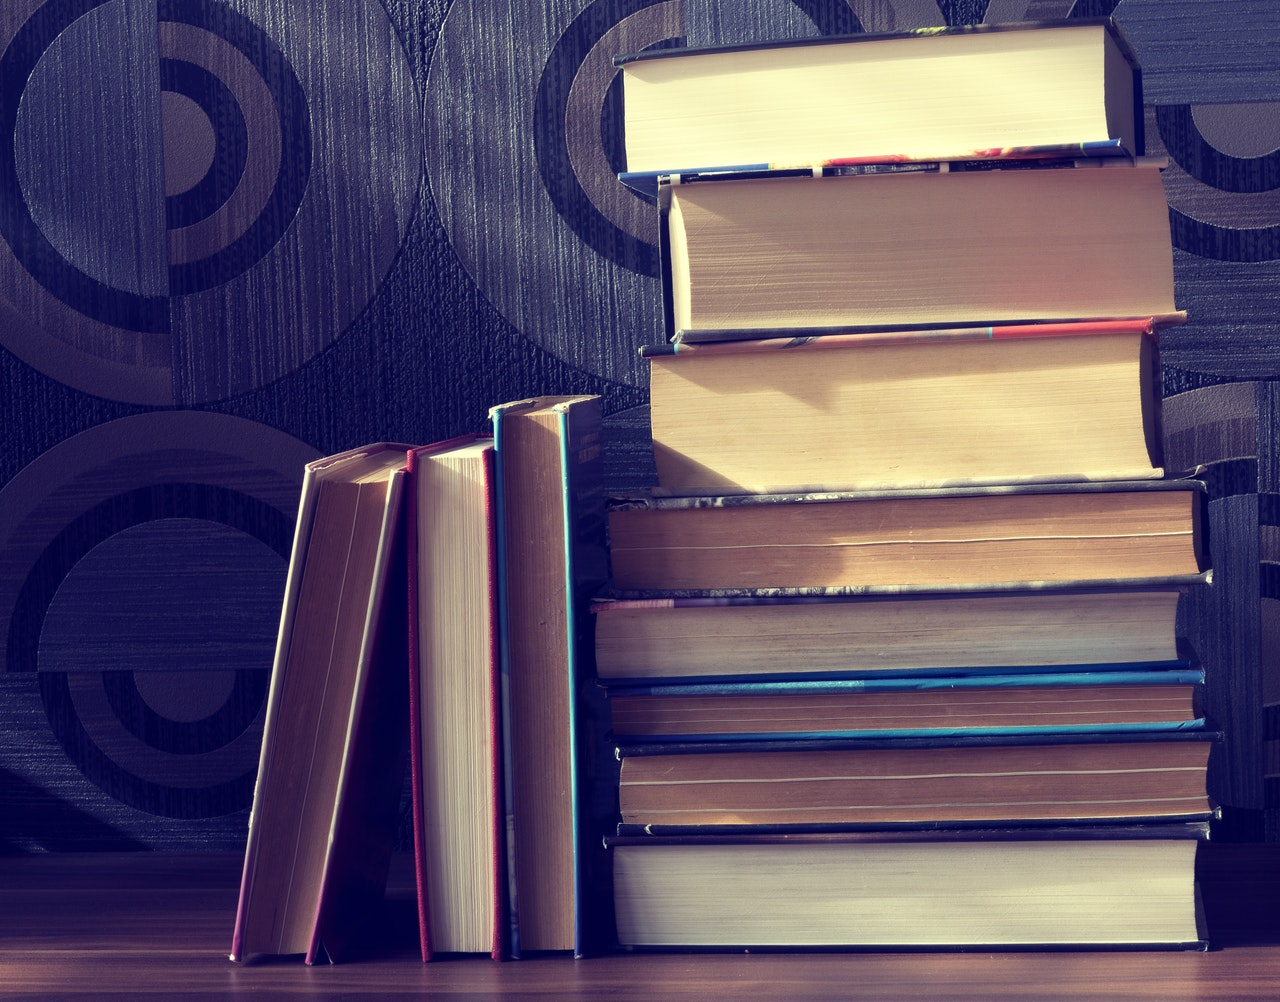 10 classic books to read in your lifetime